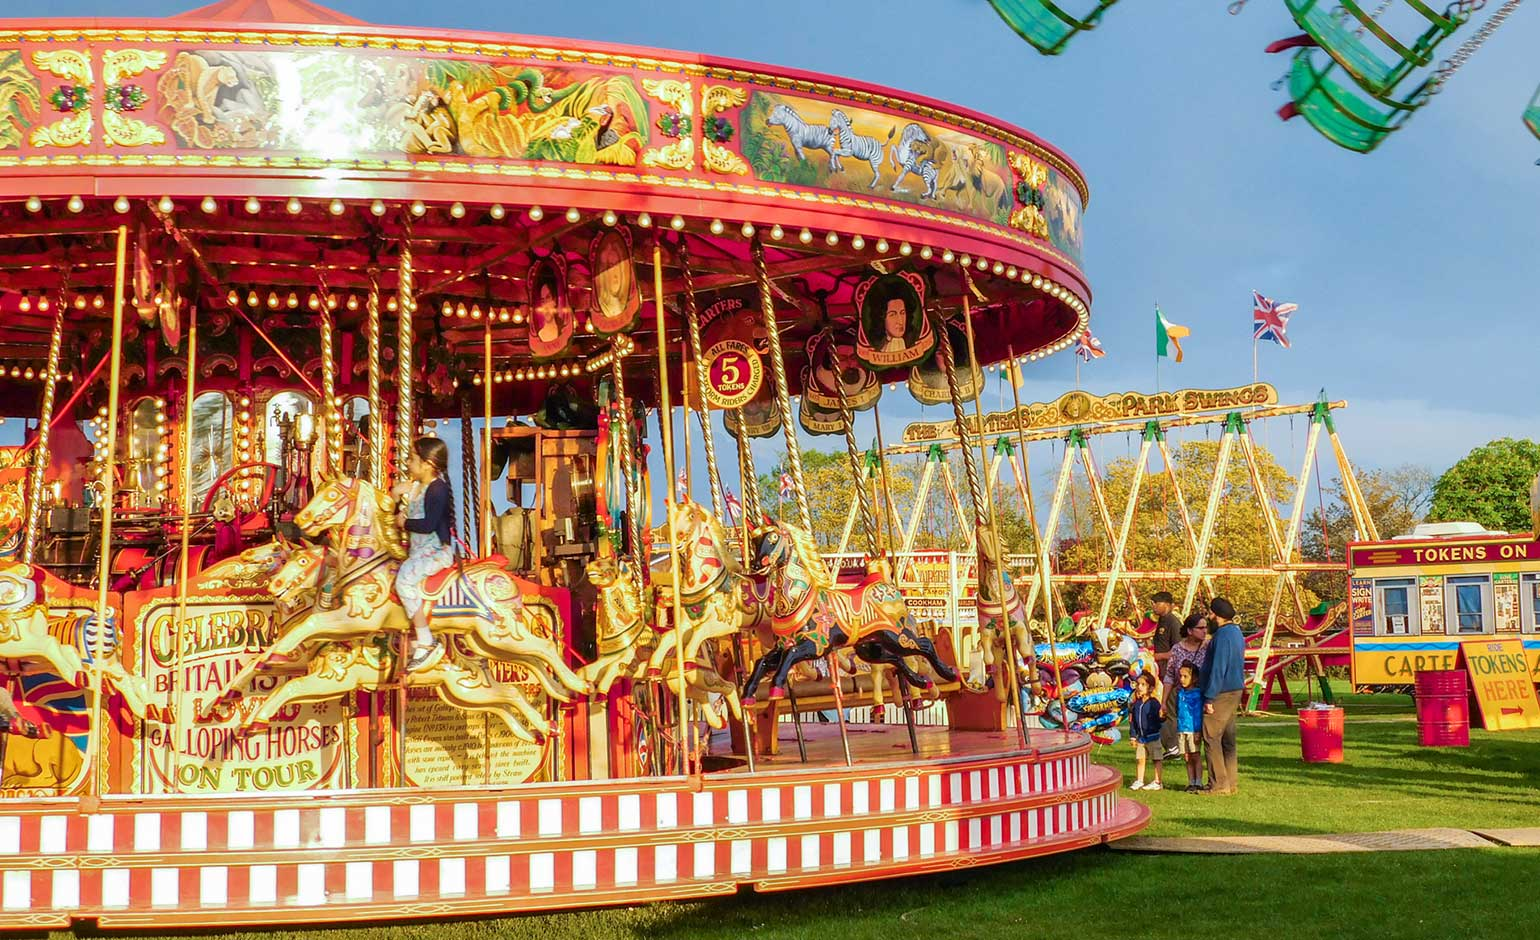 Residents encouraged to get creative at the Carters Steam Fair in Bath